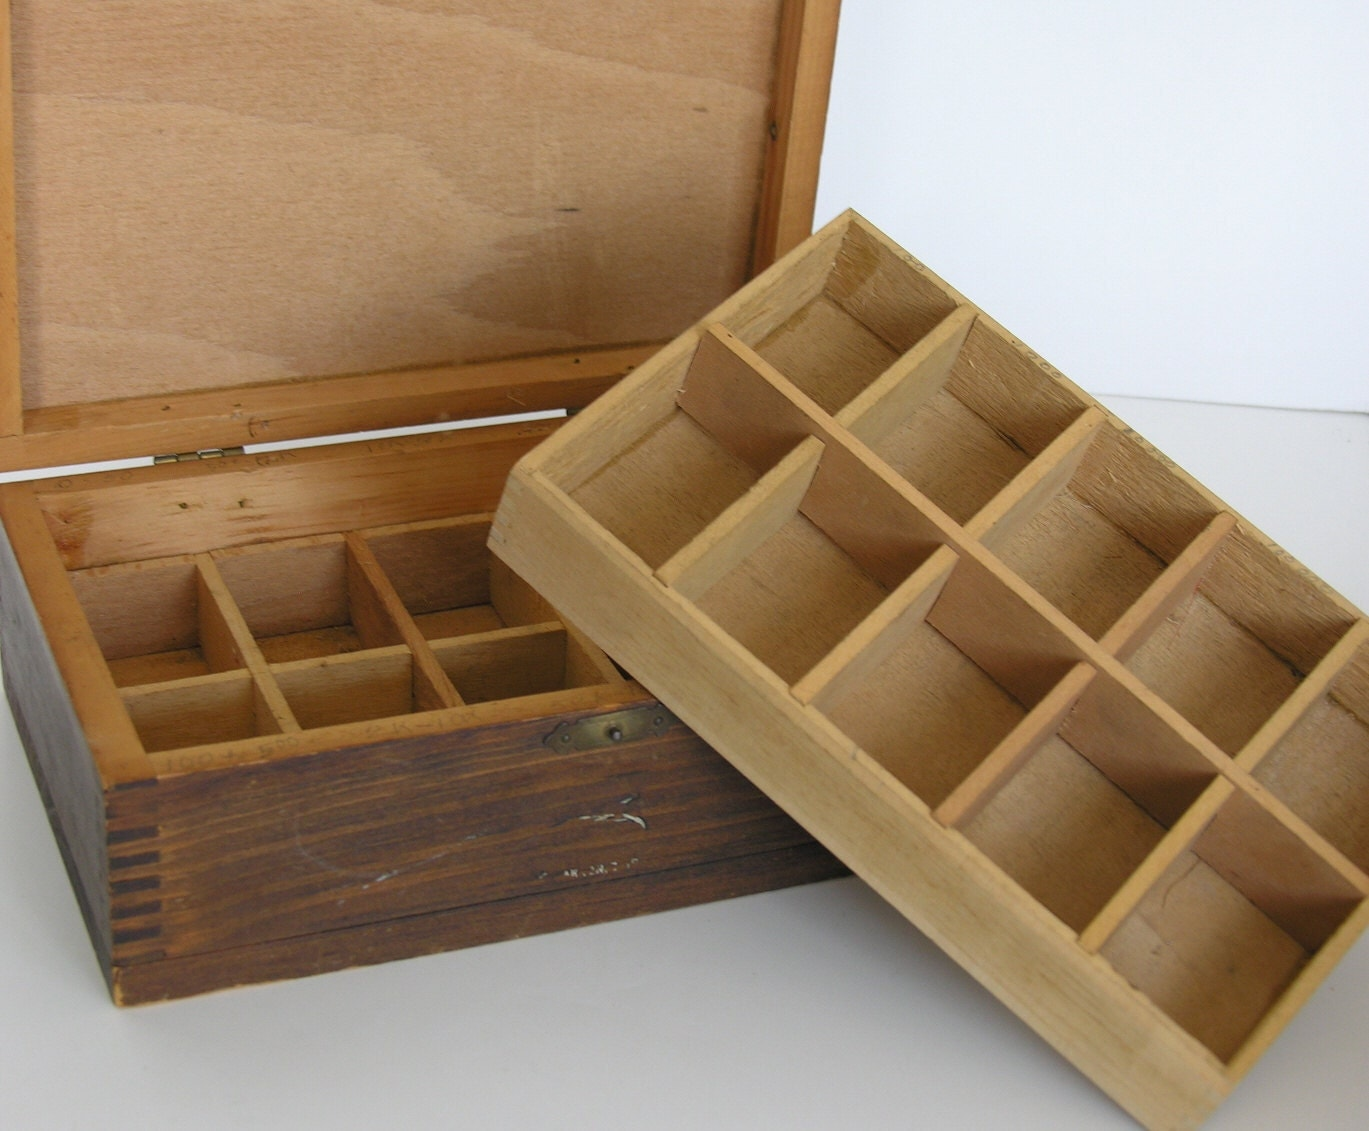 Antique Wooden Box with Dividers & Lift Out Tray by veraviola